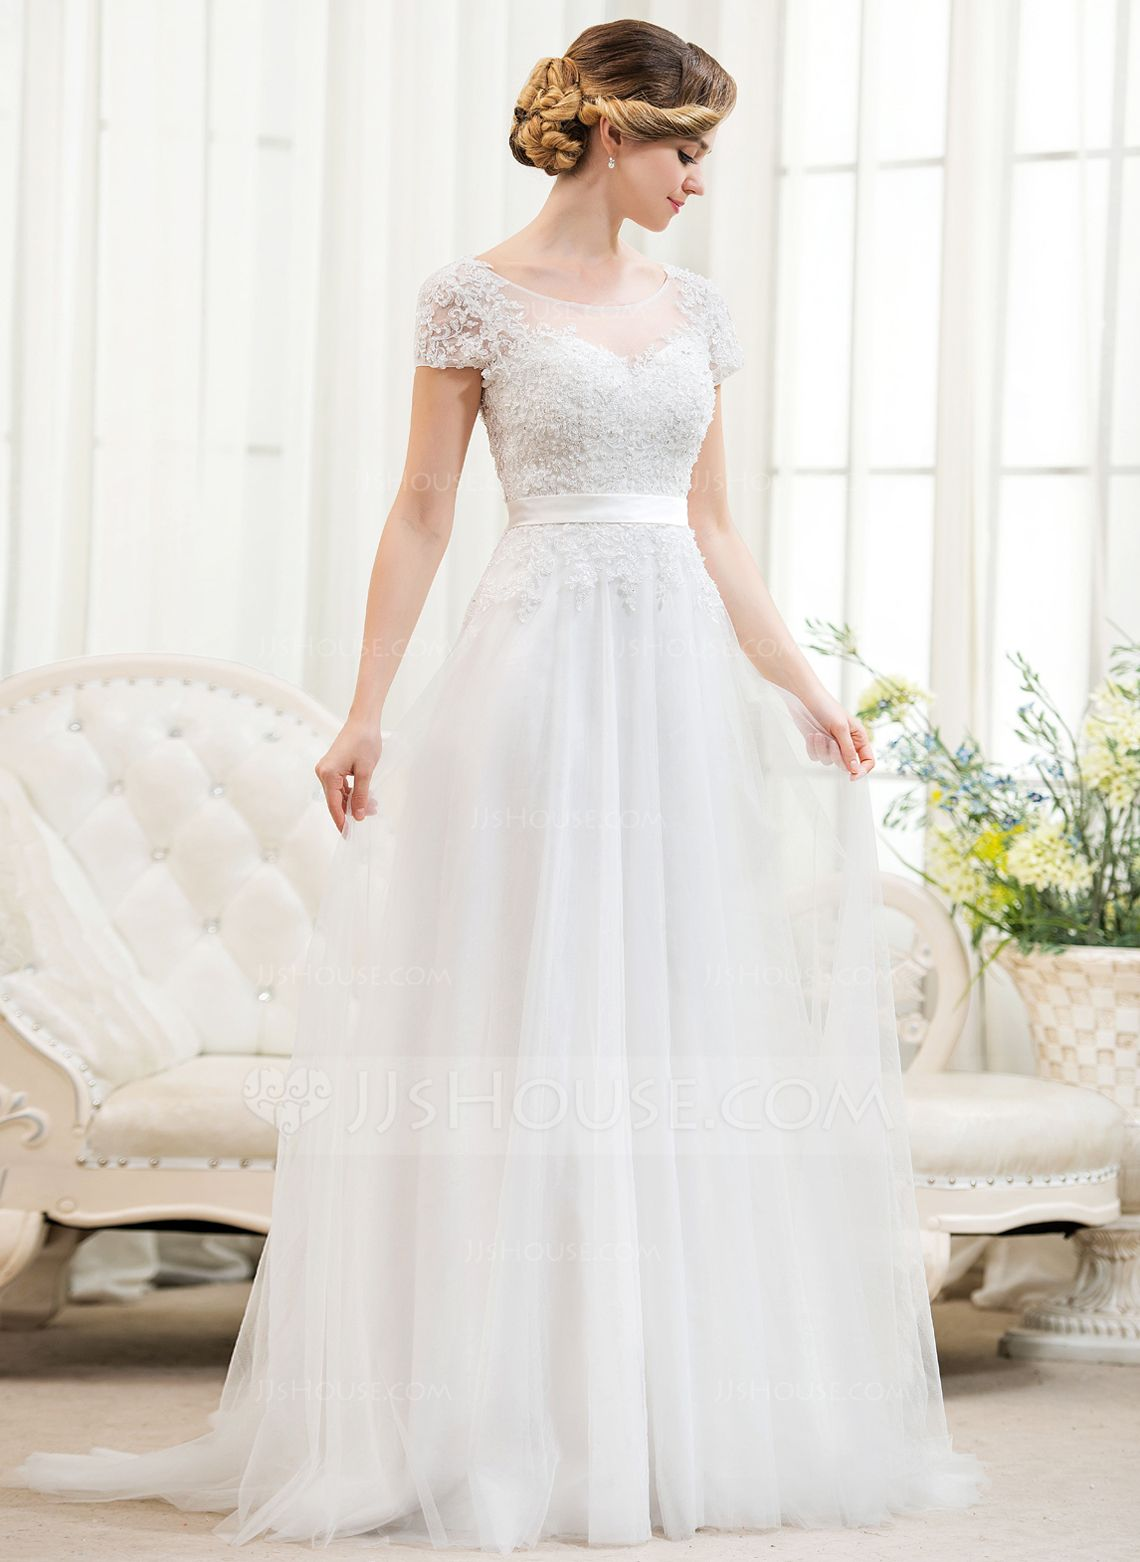 Best 11 A-Line/Princess Scoop Neck Sweep Train Tulle Lace Wedding Dress With Beading Seq. , A-Line/Princess Scoop Neck Sweep Train Tulle Lace Wedding Dress With Beading Seq.